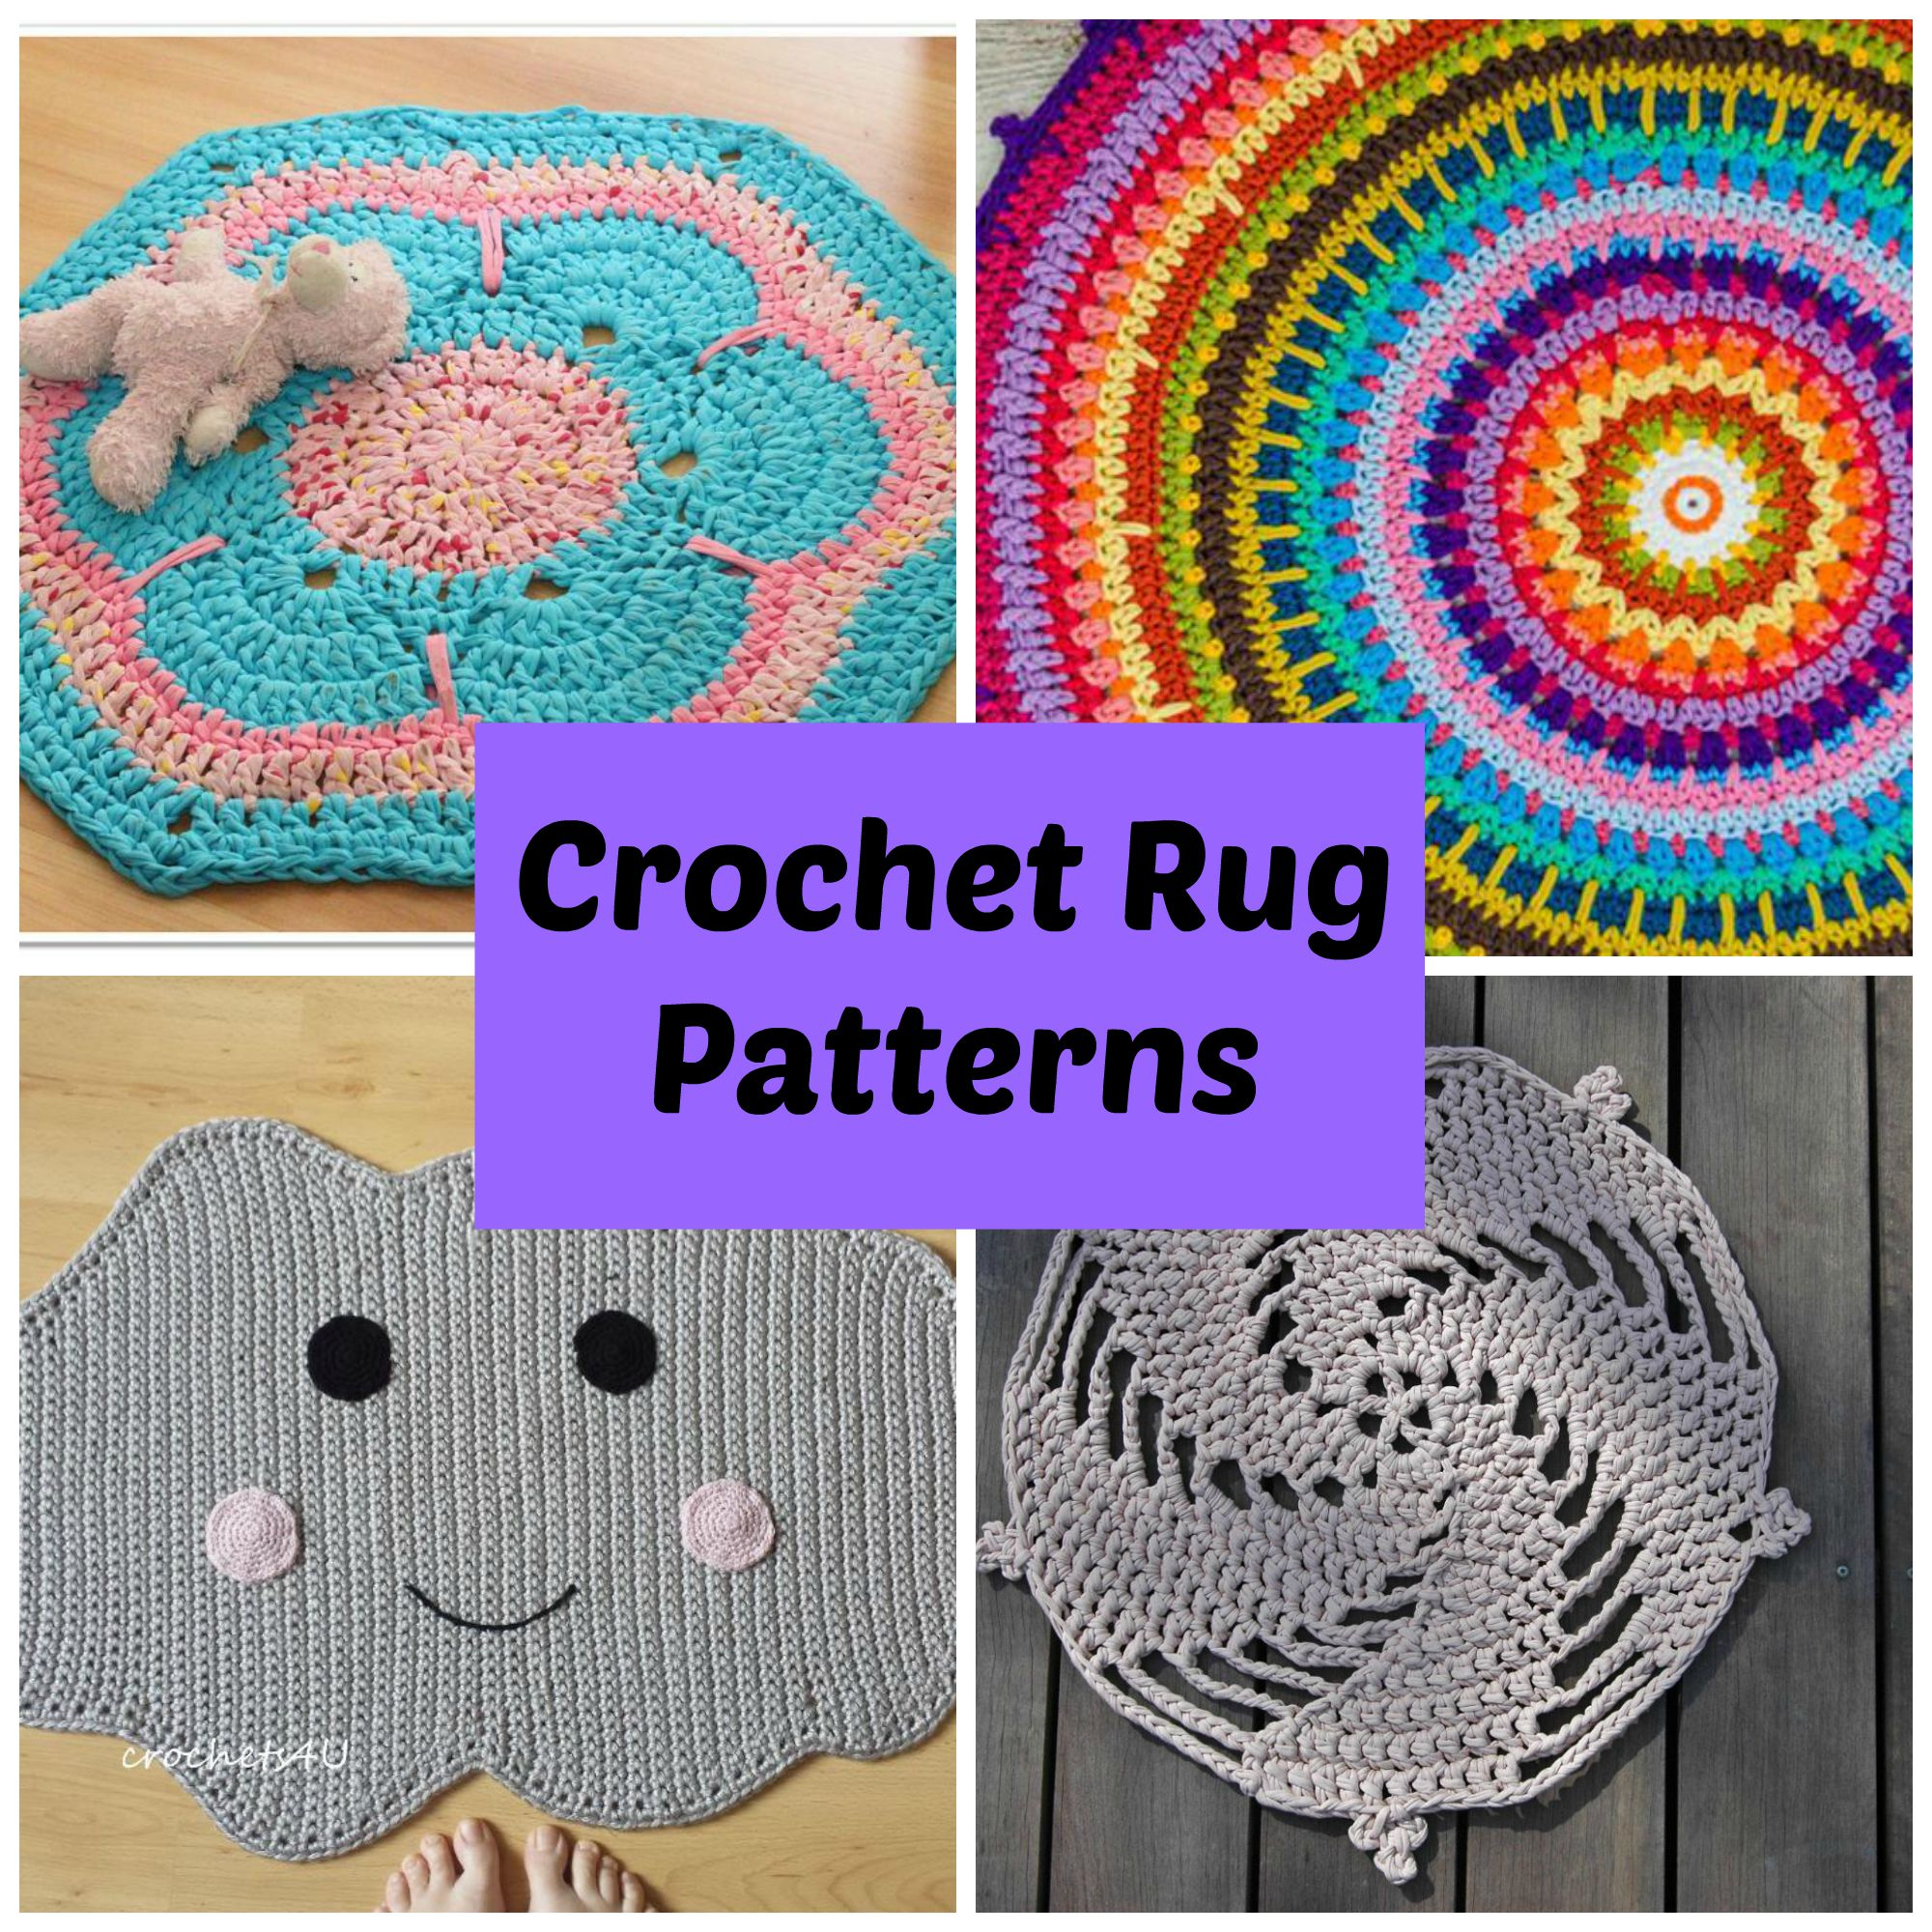 revive any room with 7 quick crochet rug patterns wydhmxi